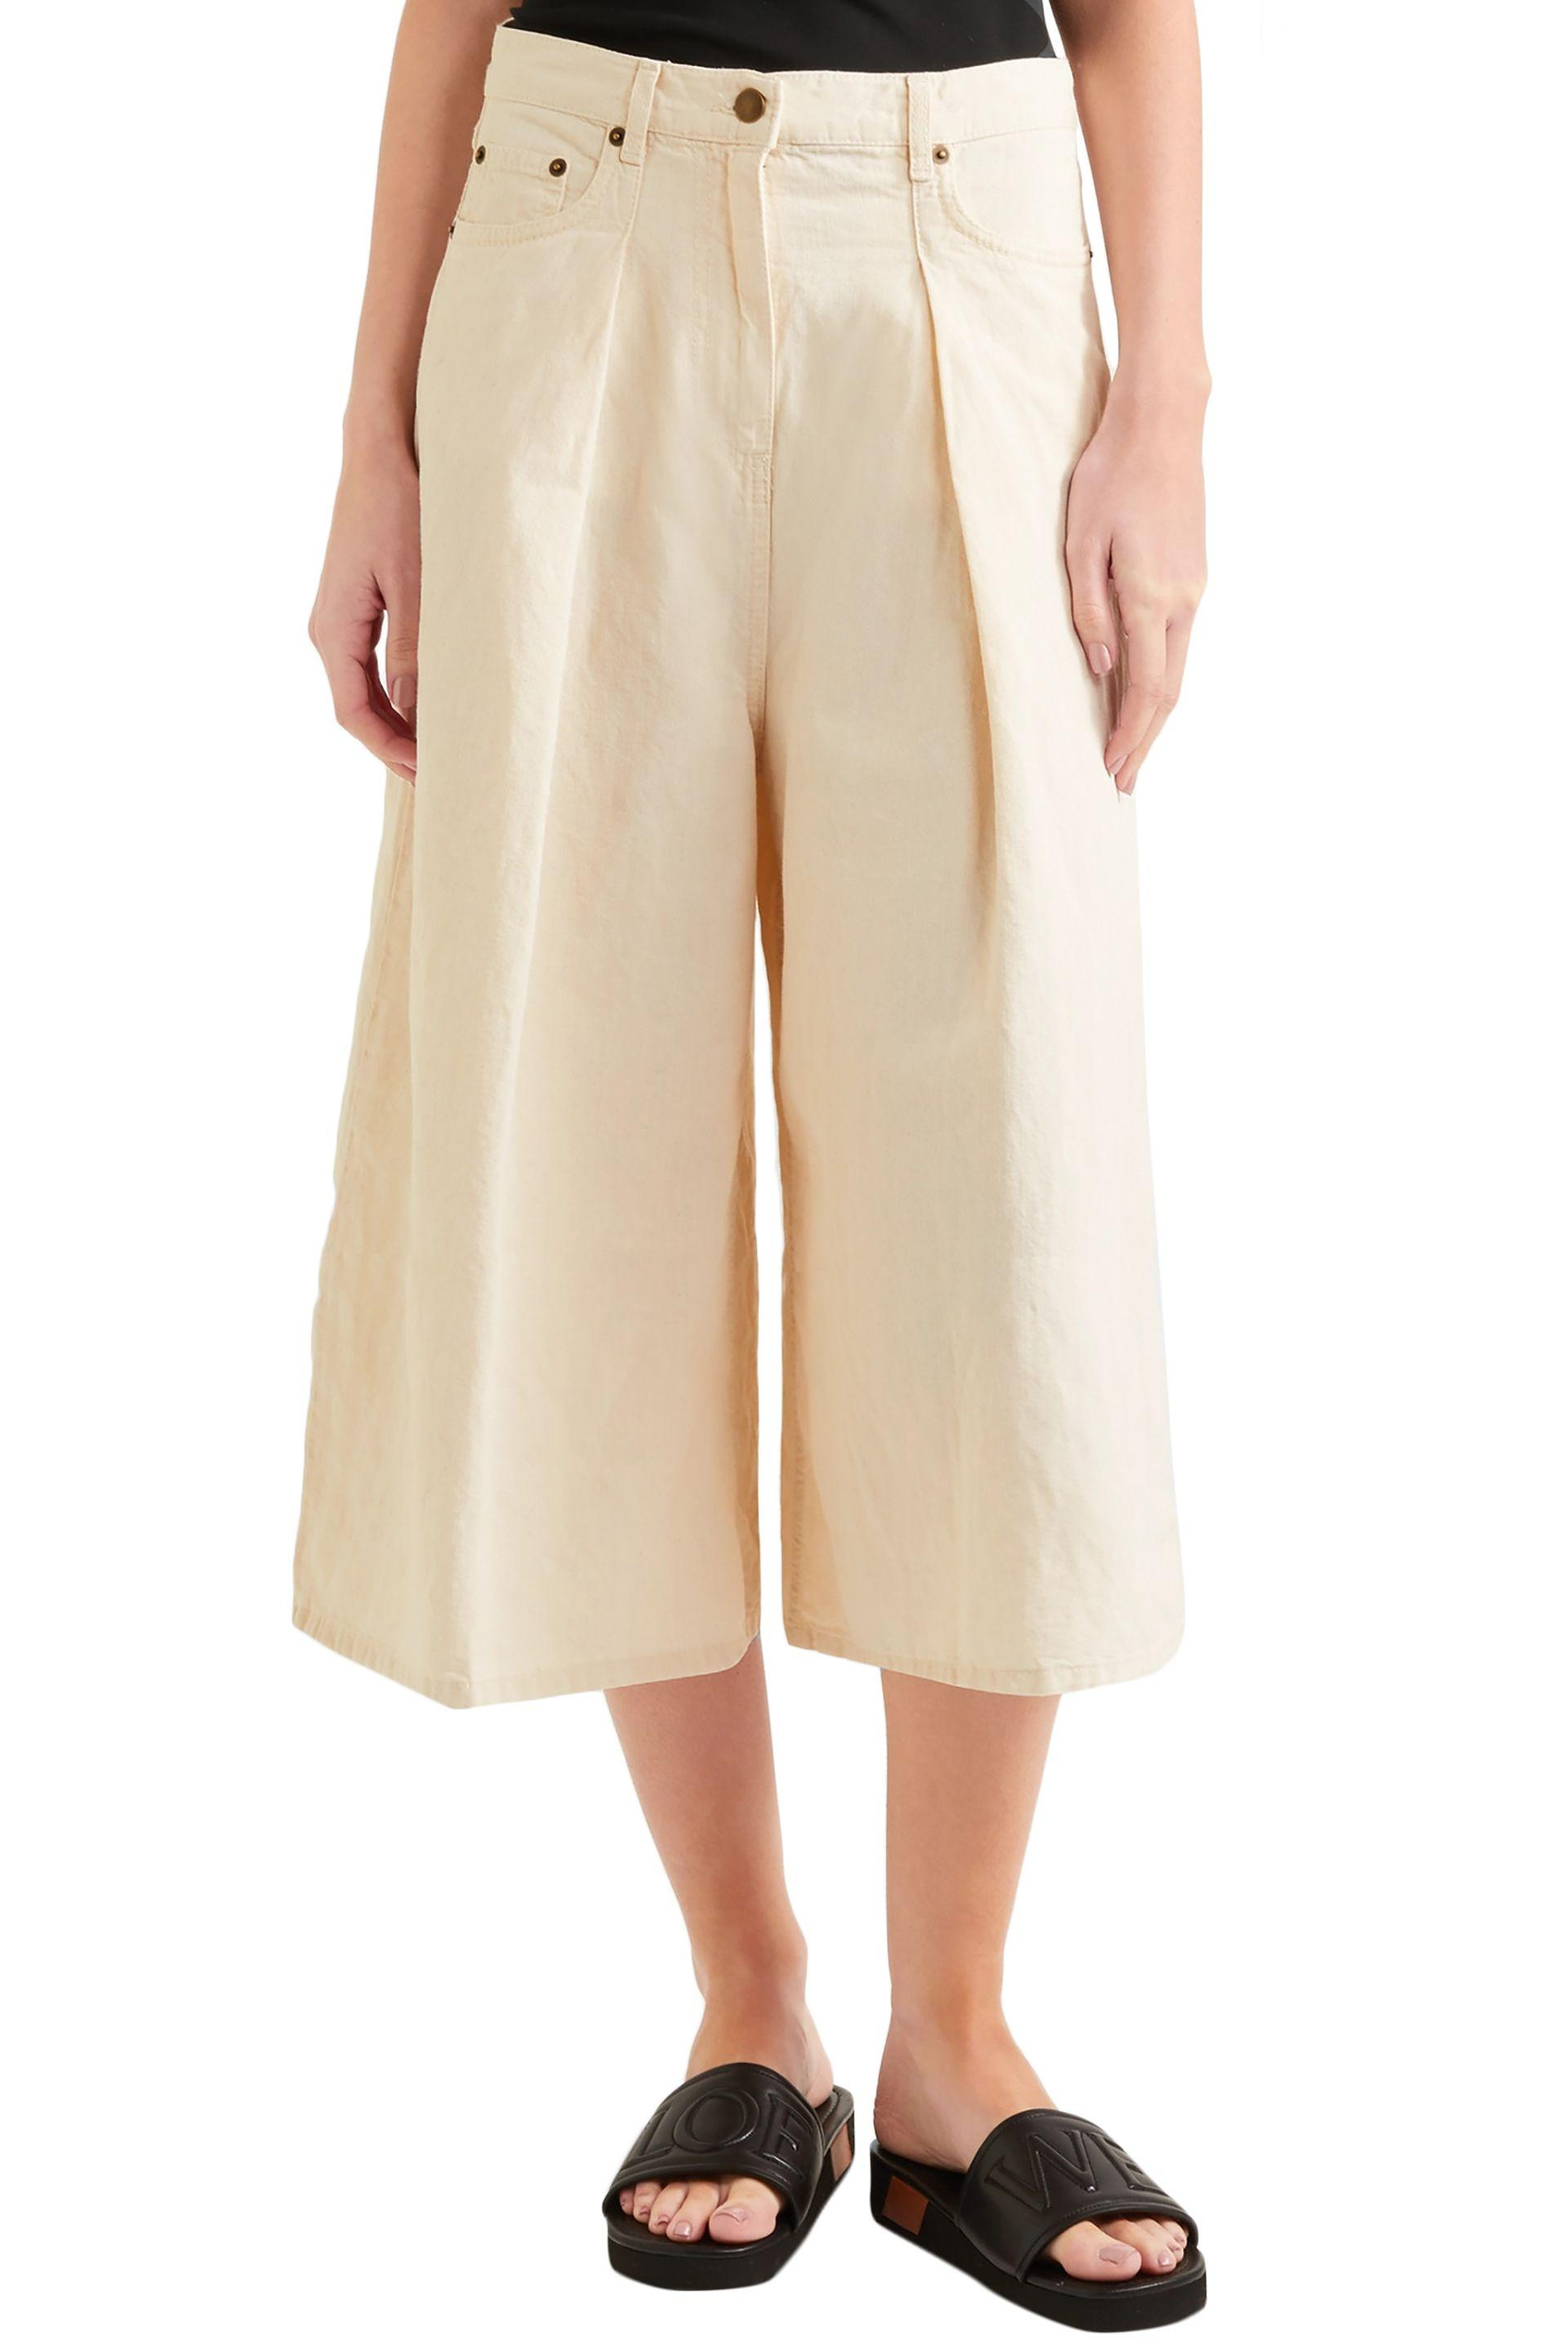 McQ Denim Cropped Cotton And Linen-blend Wide-leg Pants Ivory in White